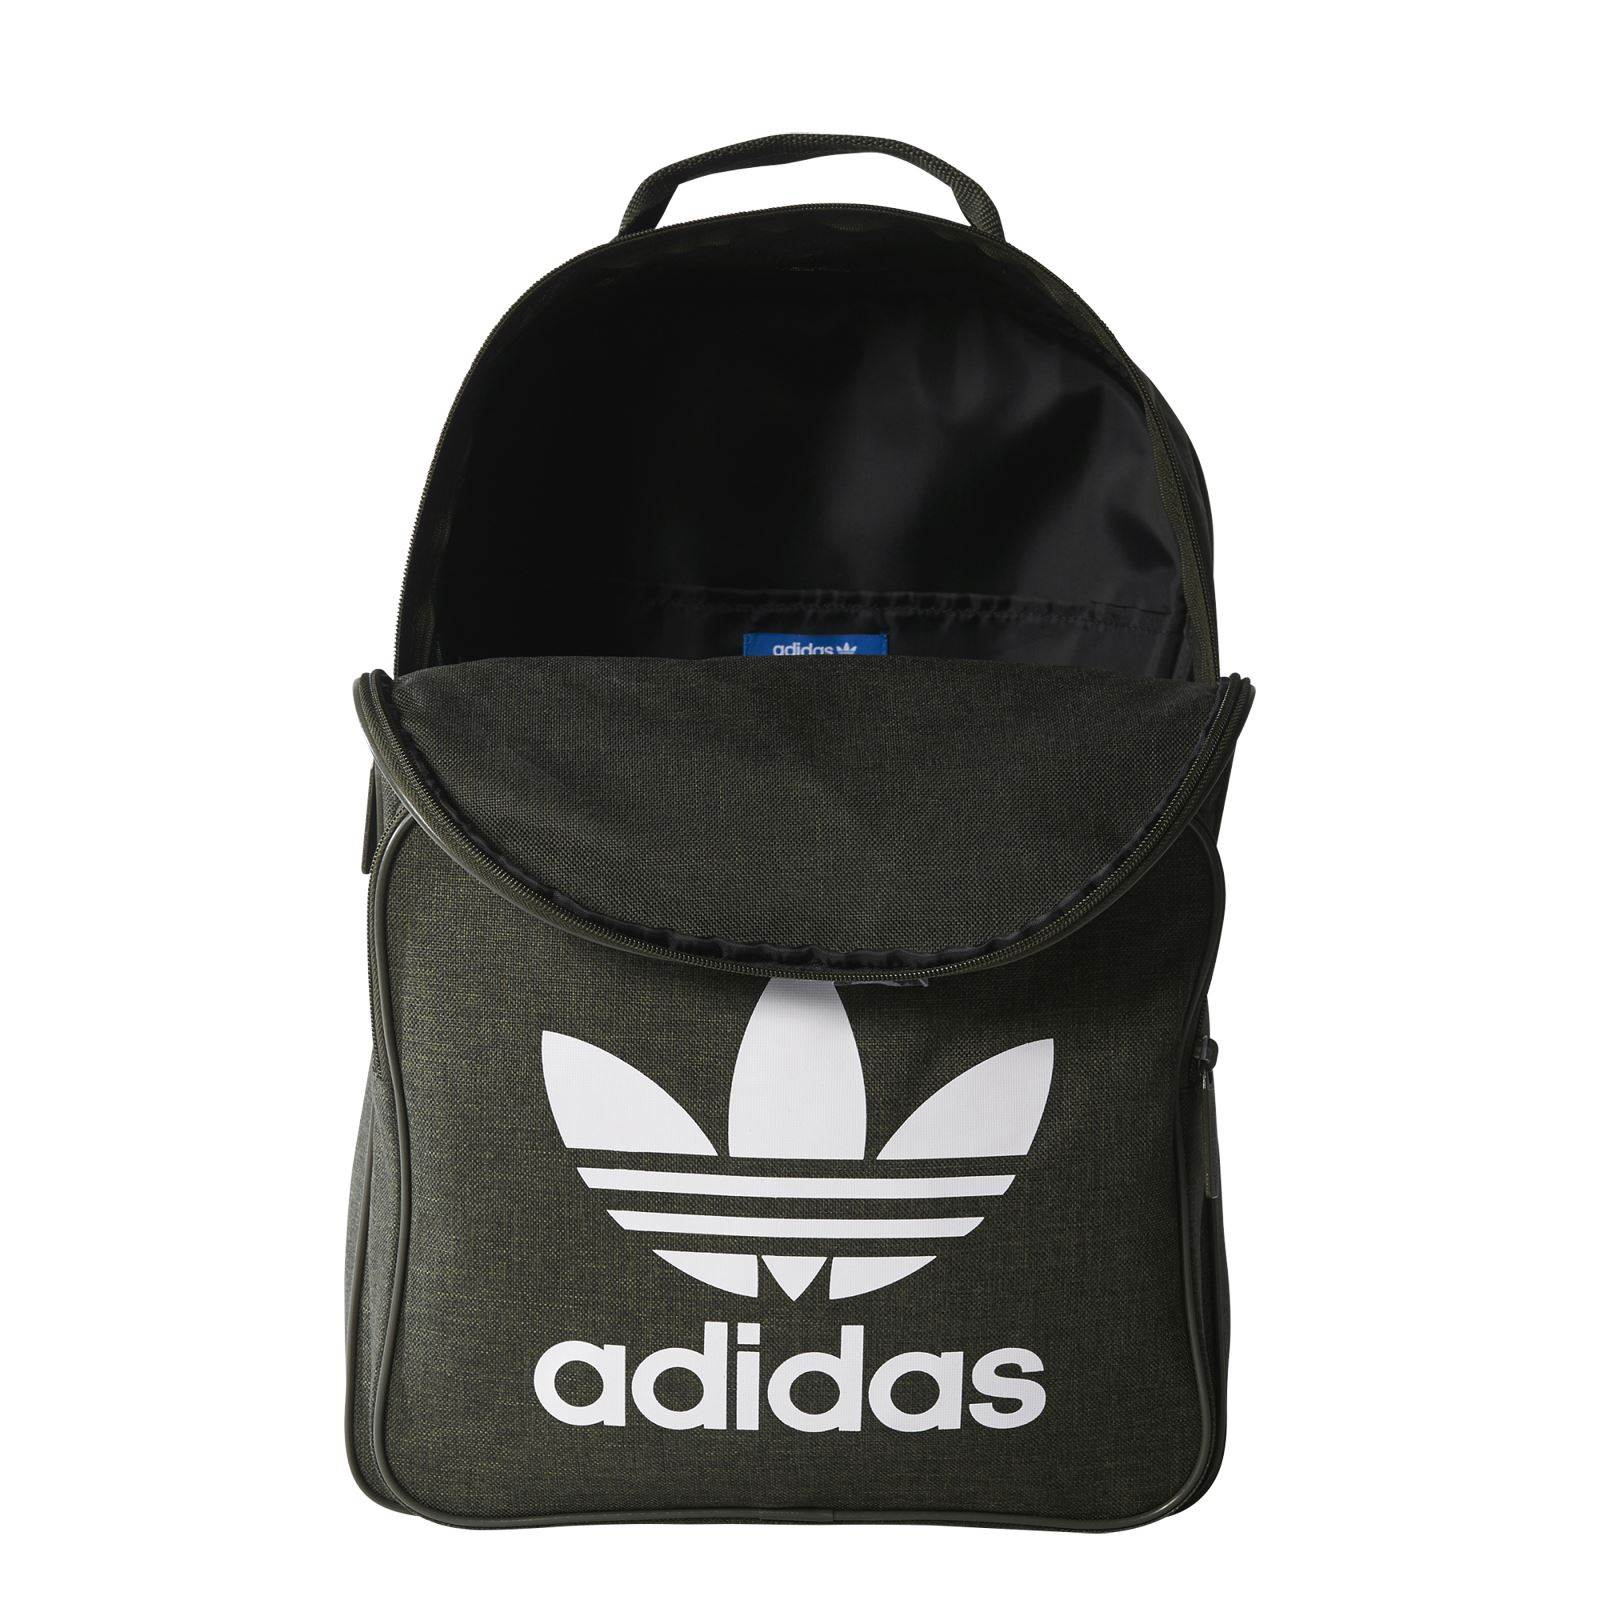 adidas originals rucksack dunkelgrau brandalley. Black Bedroom Furniture Sets. Home Design Ideas